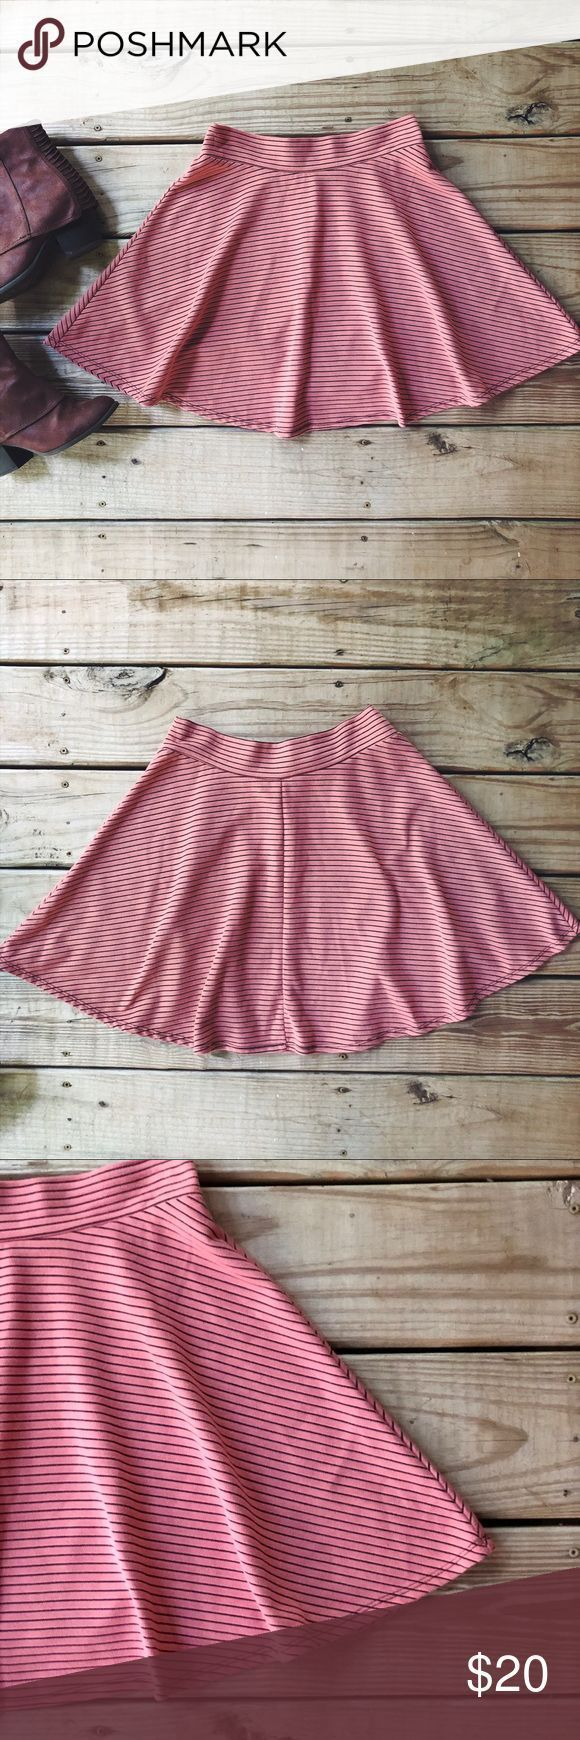 #AestheticButtockSurgical-Pink & Navy Striped Circle Skater Skirt Dieser Rock …..